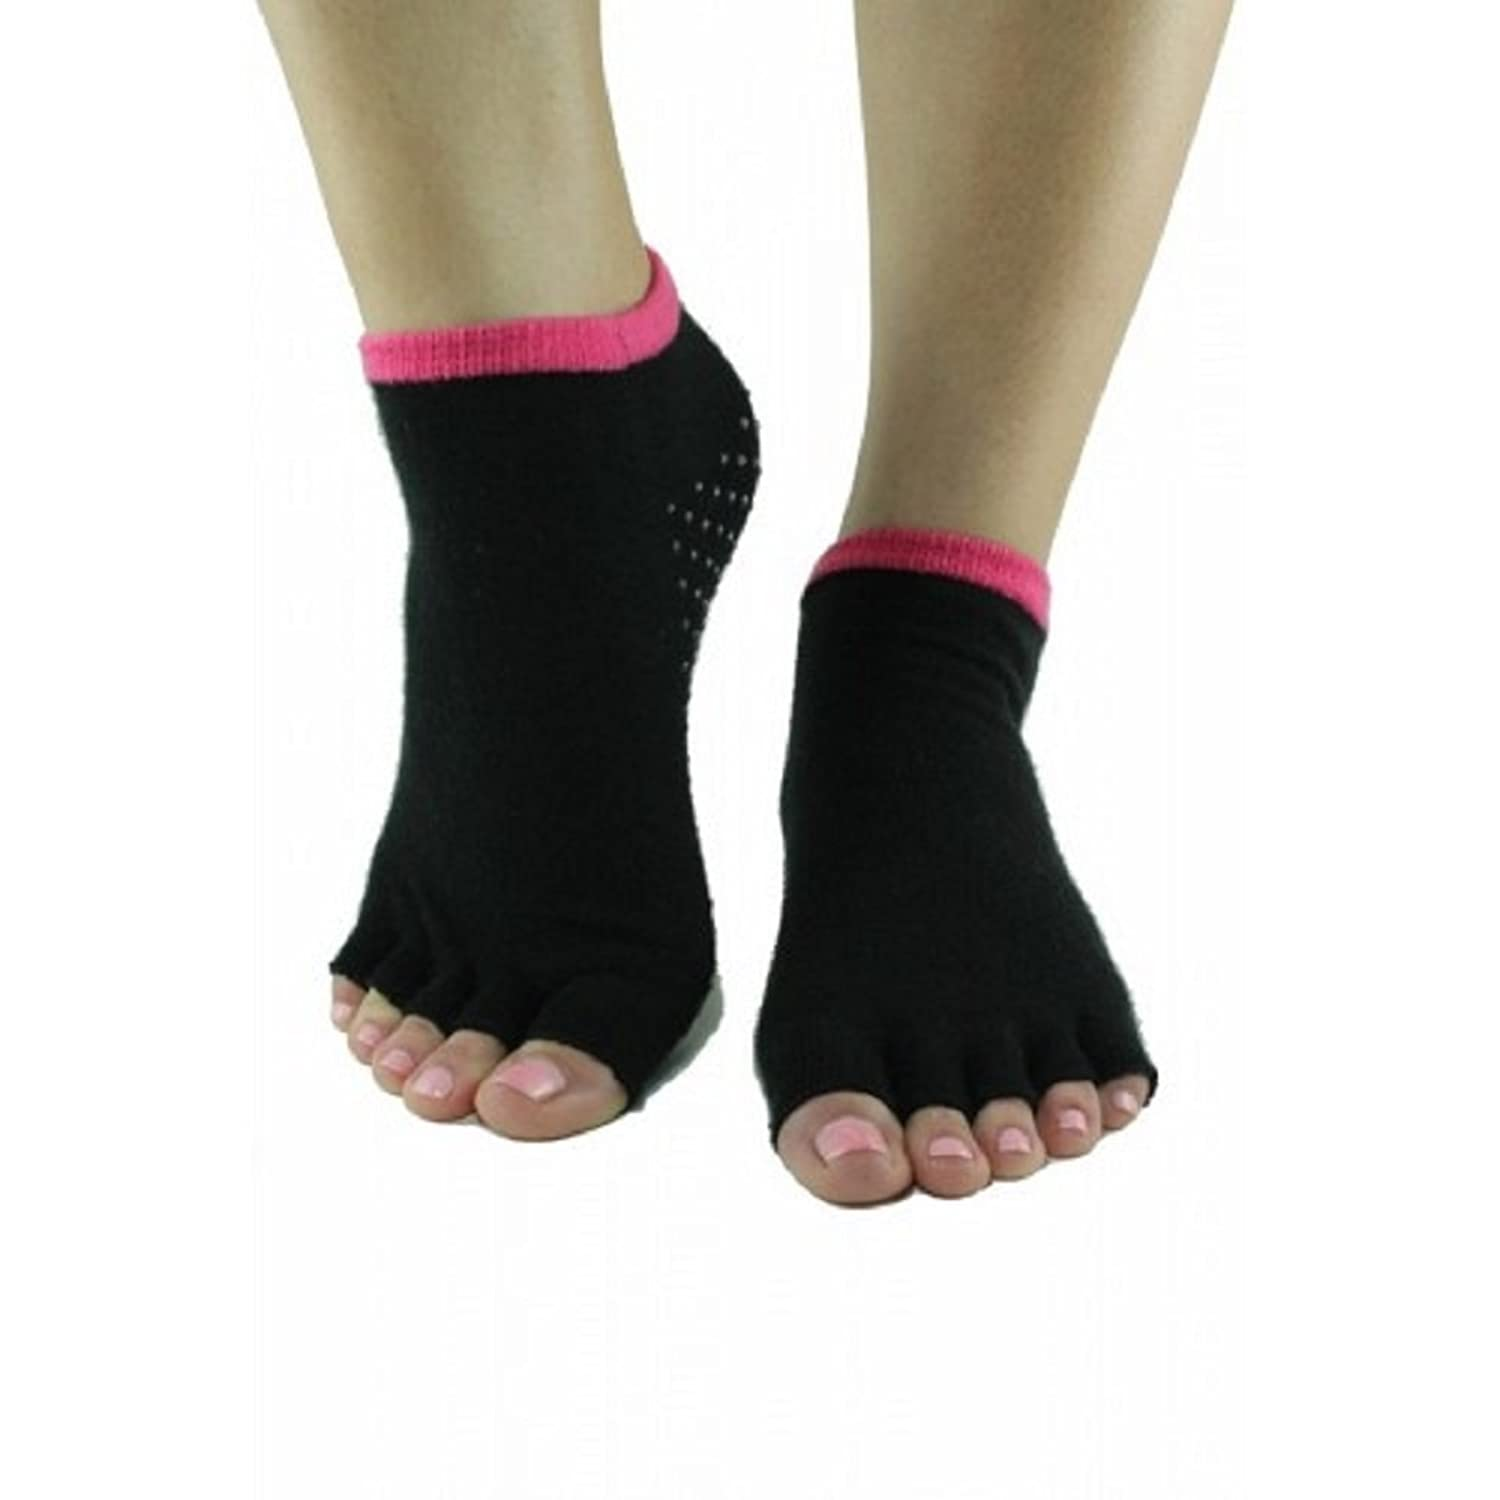 Toezies The Original 1/2 Toe Socks for Yoga/Pilates Pink Lipz